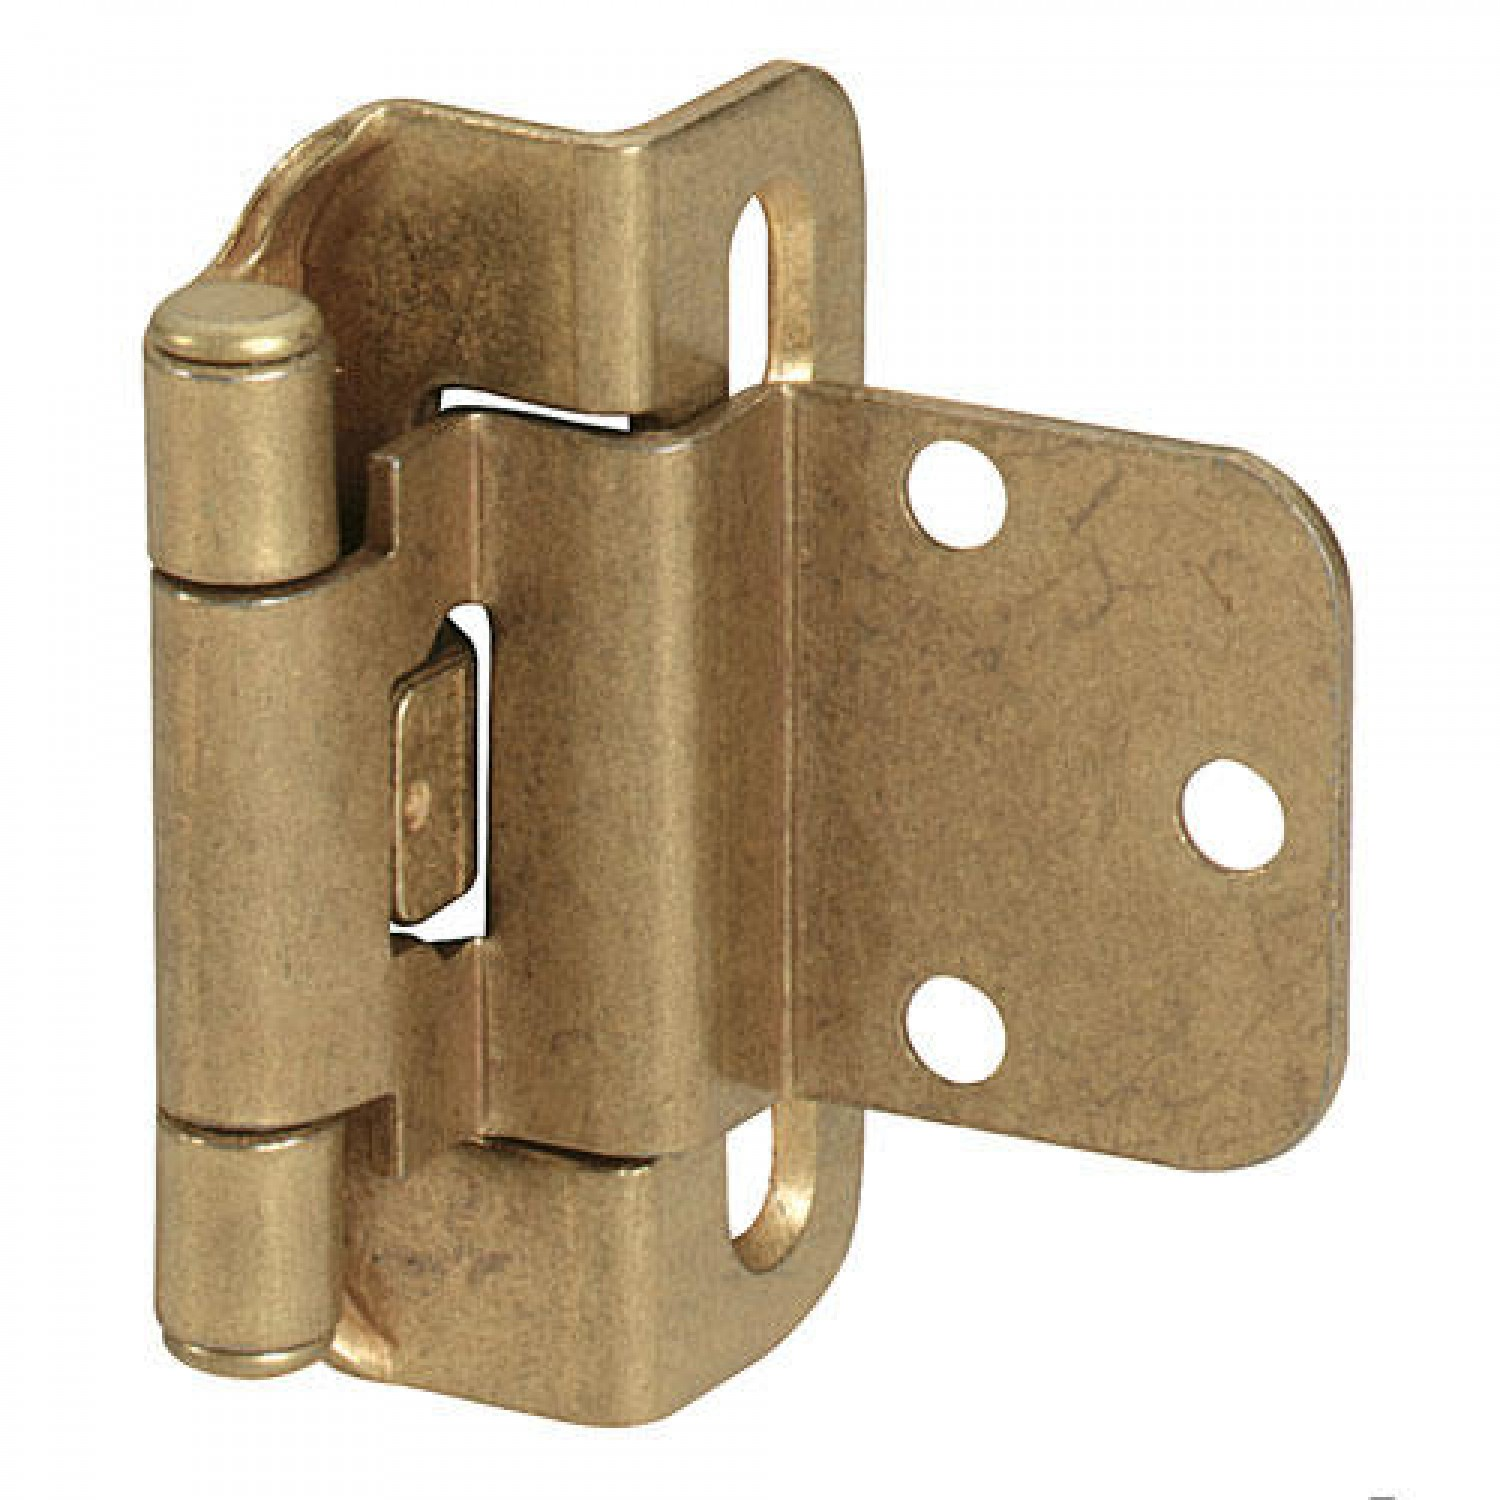 Self closing kitchen cabinet hinges Photo - 10